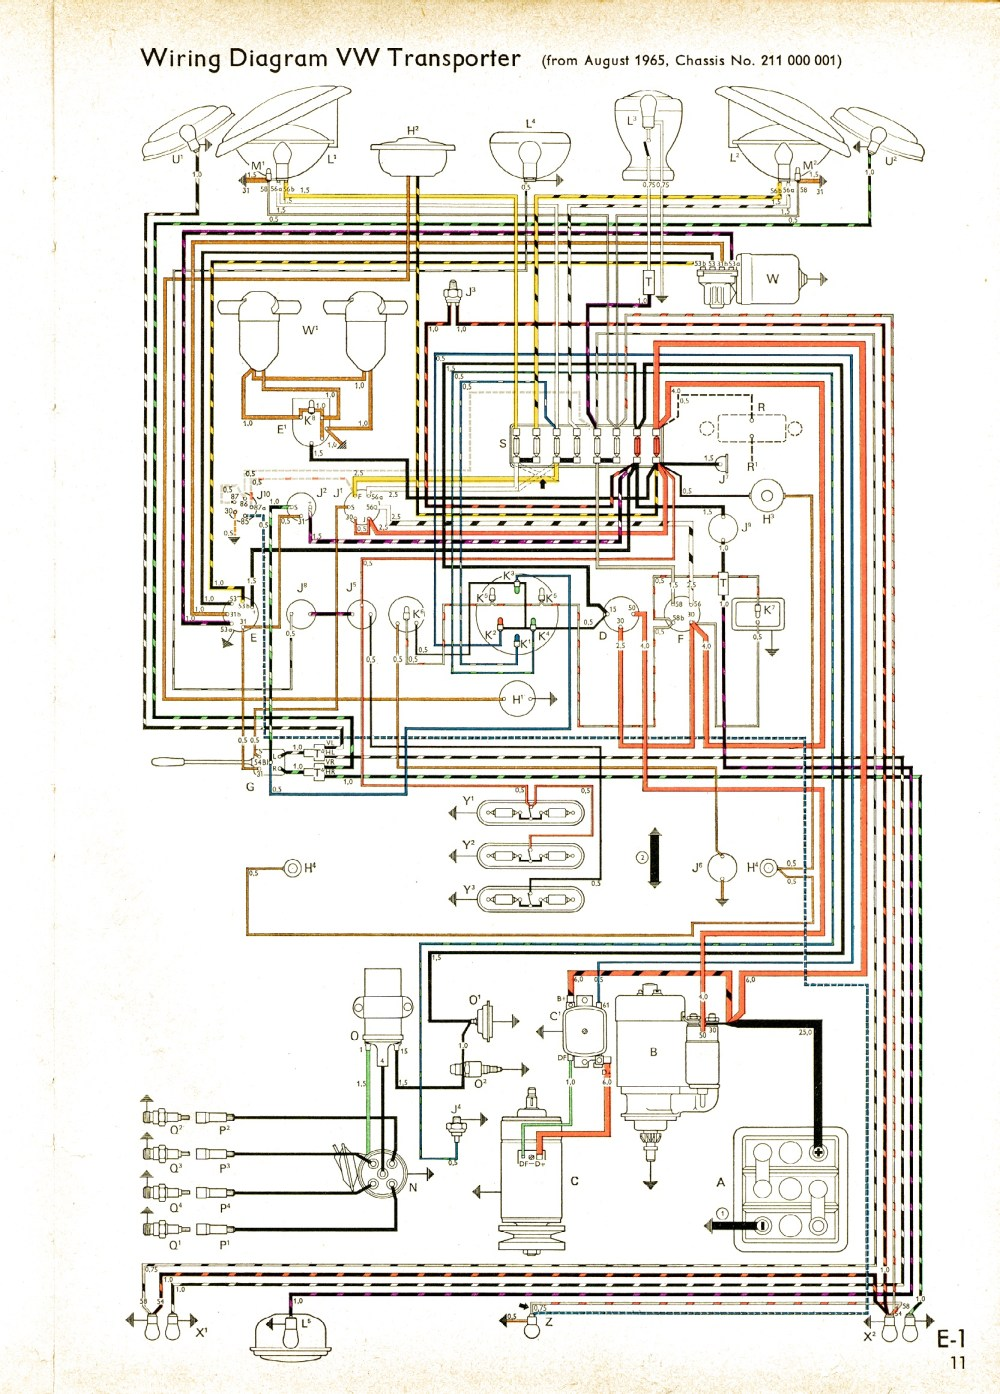 medium resolution of vintagebus com vw bus and other wiring diagrams rh vintagebus com 2004 vw beetle air conditioning diagram volkswagen 2002 beetle wiring diagram